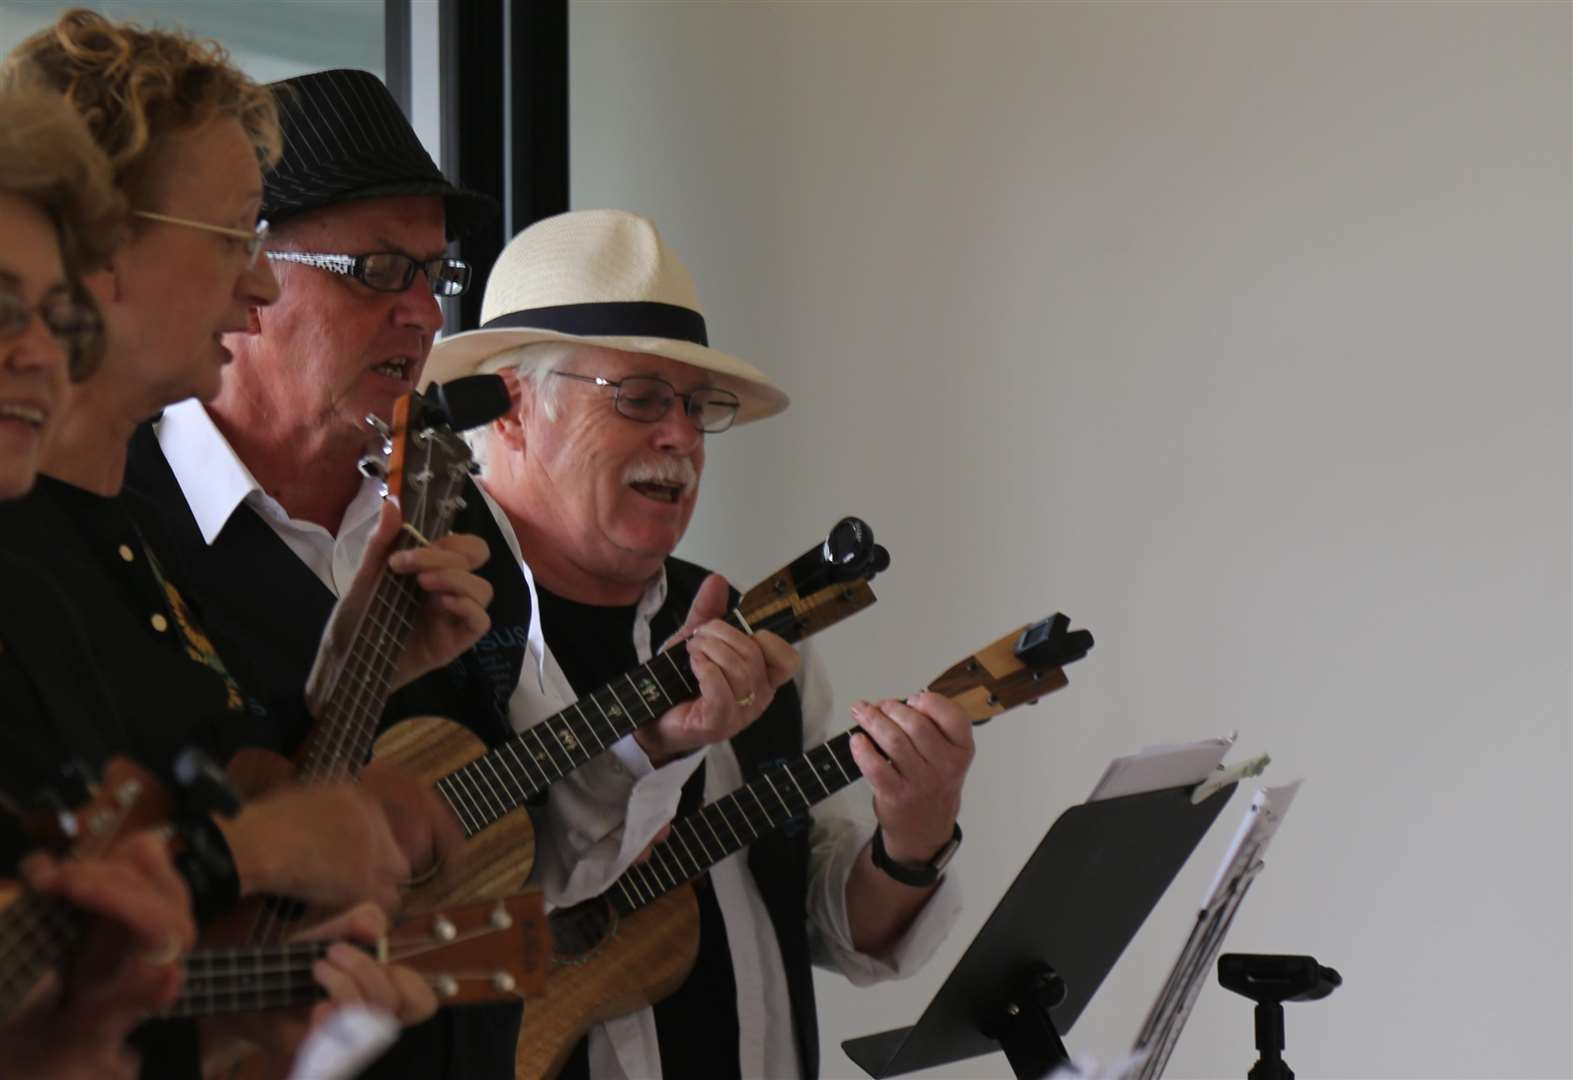 Radwinter church to host a live concert of ukulele music